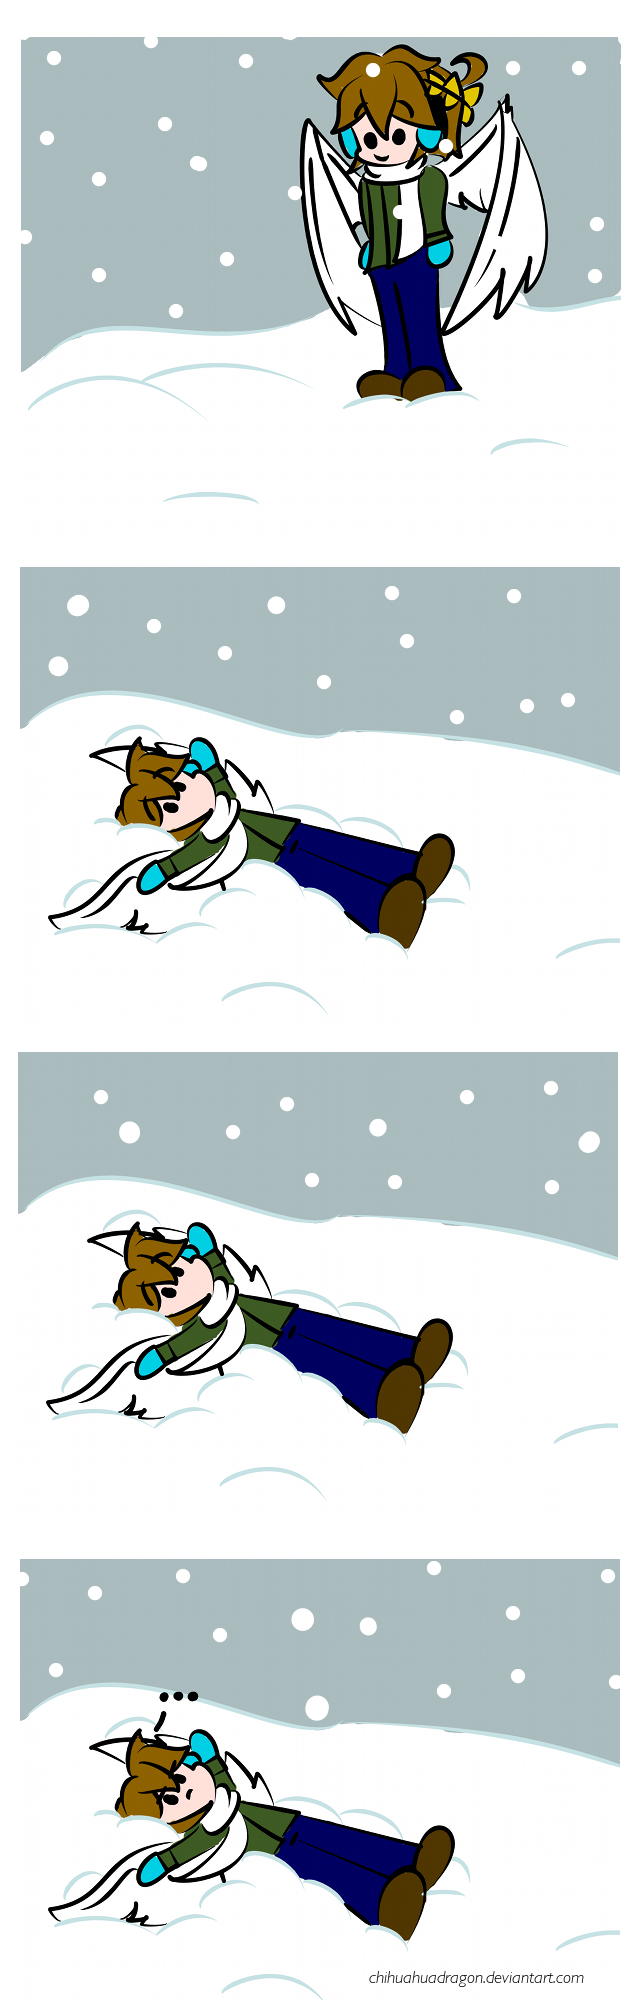 Snow Angel by Chihuahuadragon